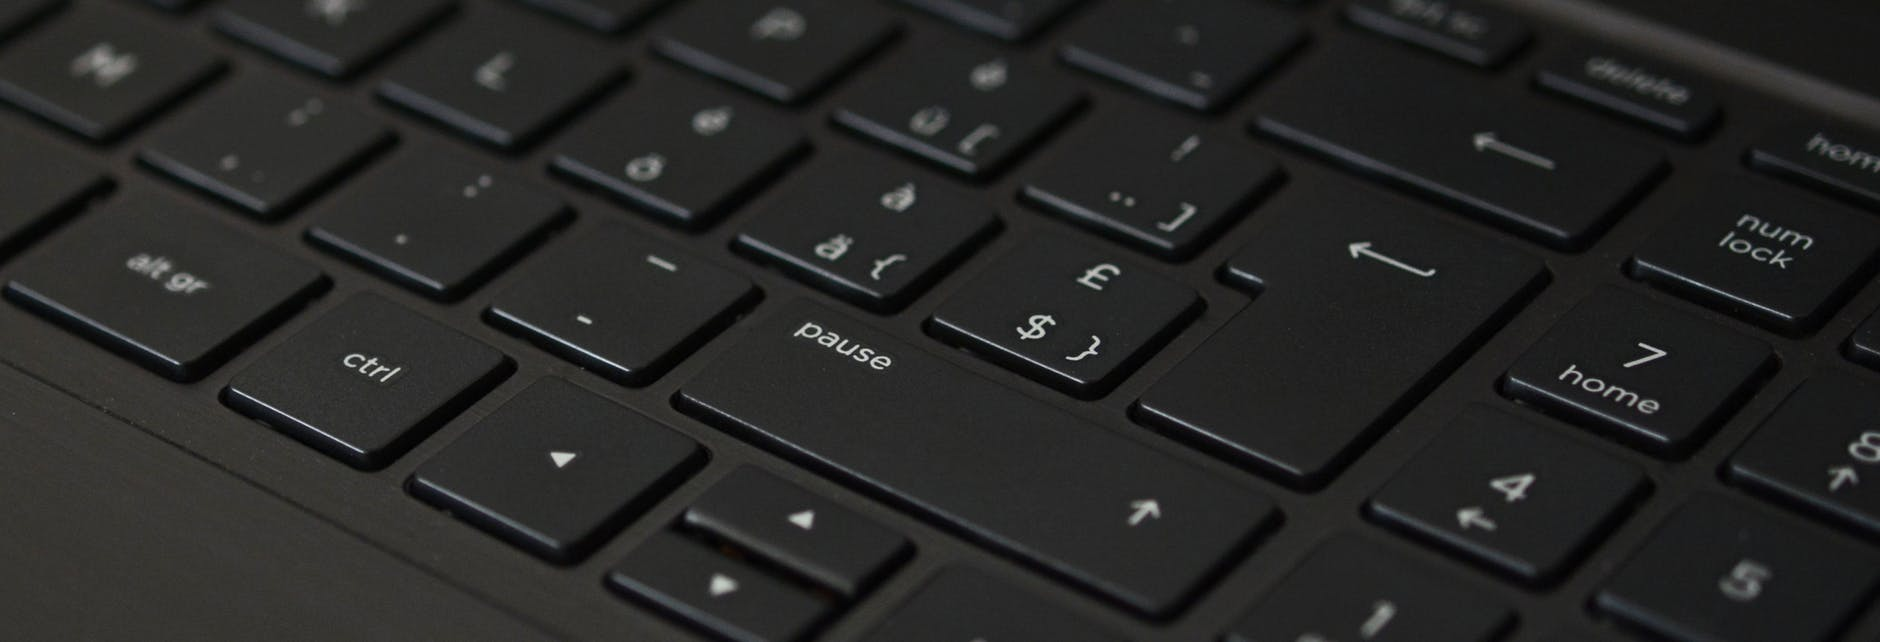 keyboard-black-notebook-input-163130